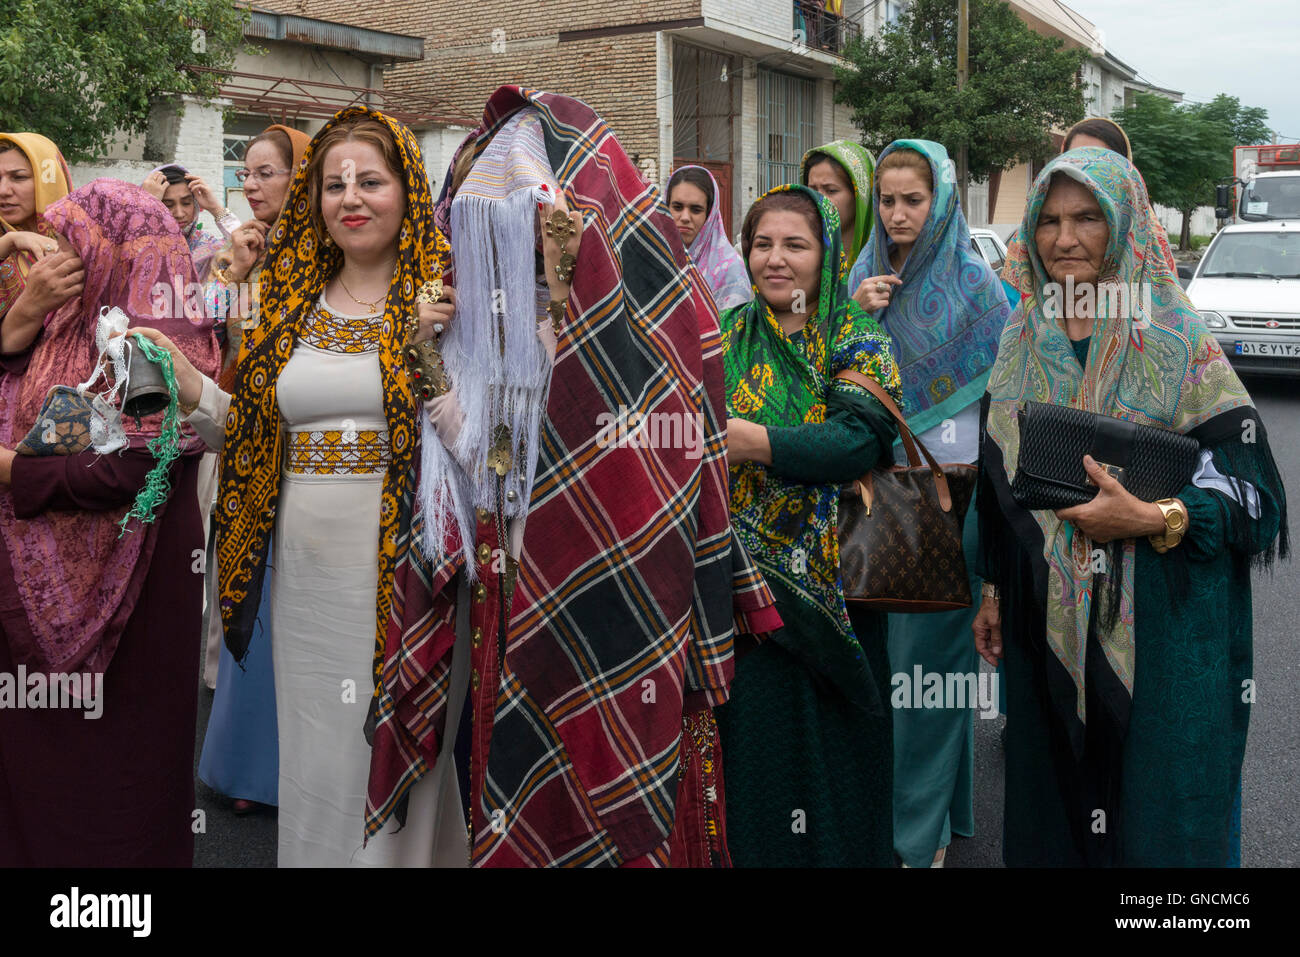 Bandar Torkaman, Turkmen Wedding, Bride Covered With Tratitional Veil Walking On The Street With Female Relatives - Stock Image